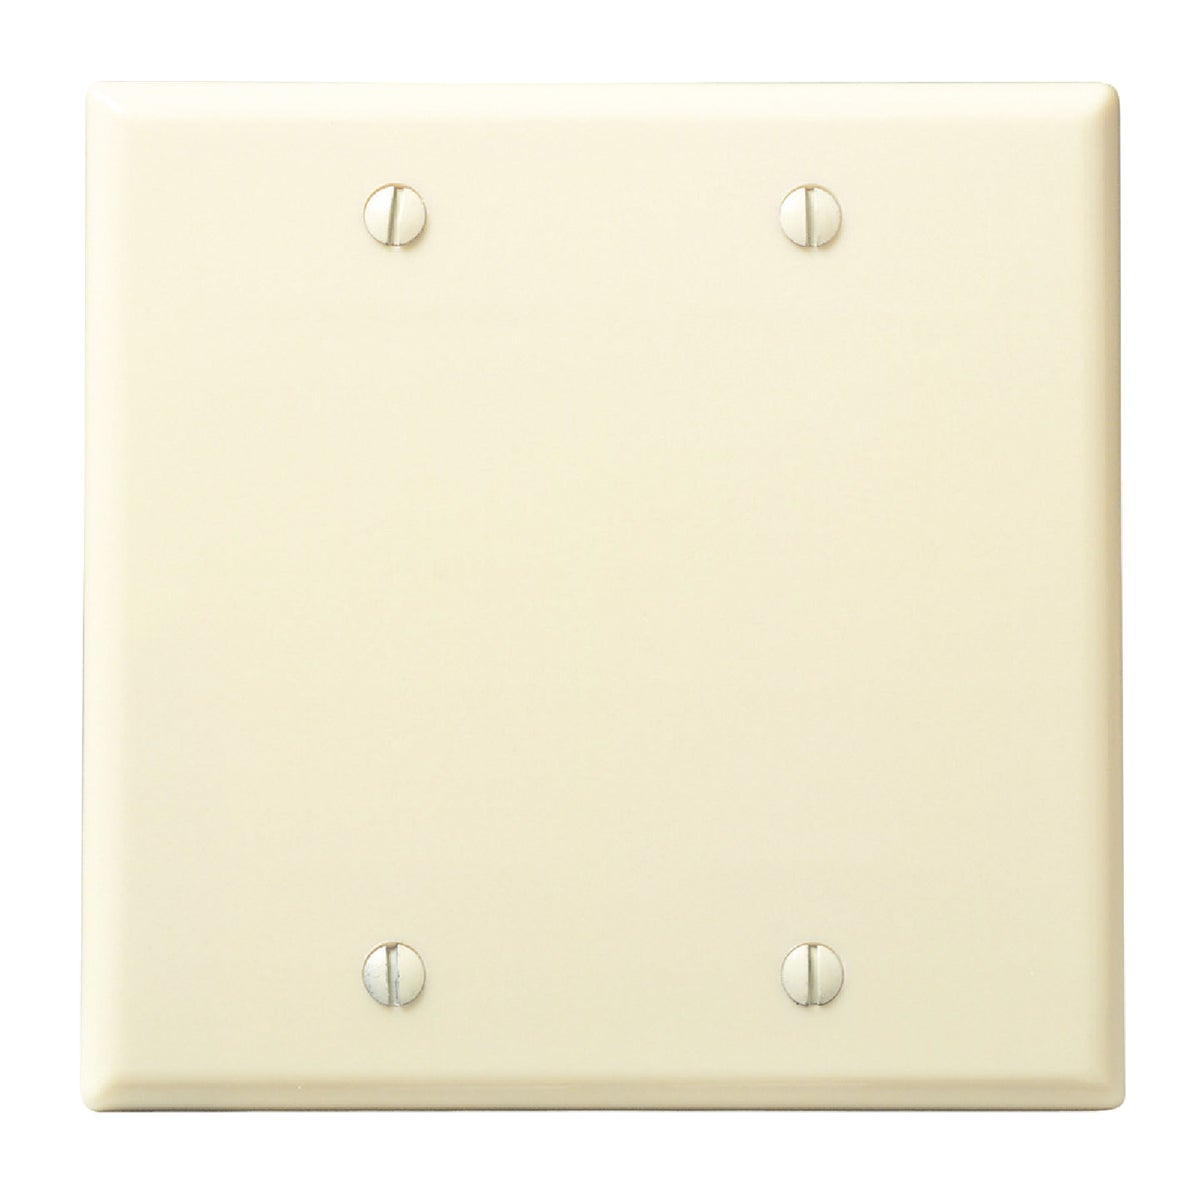 IV BLANK WALL PLATE - 86025 by Leviton Mfg Co